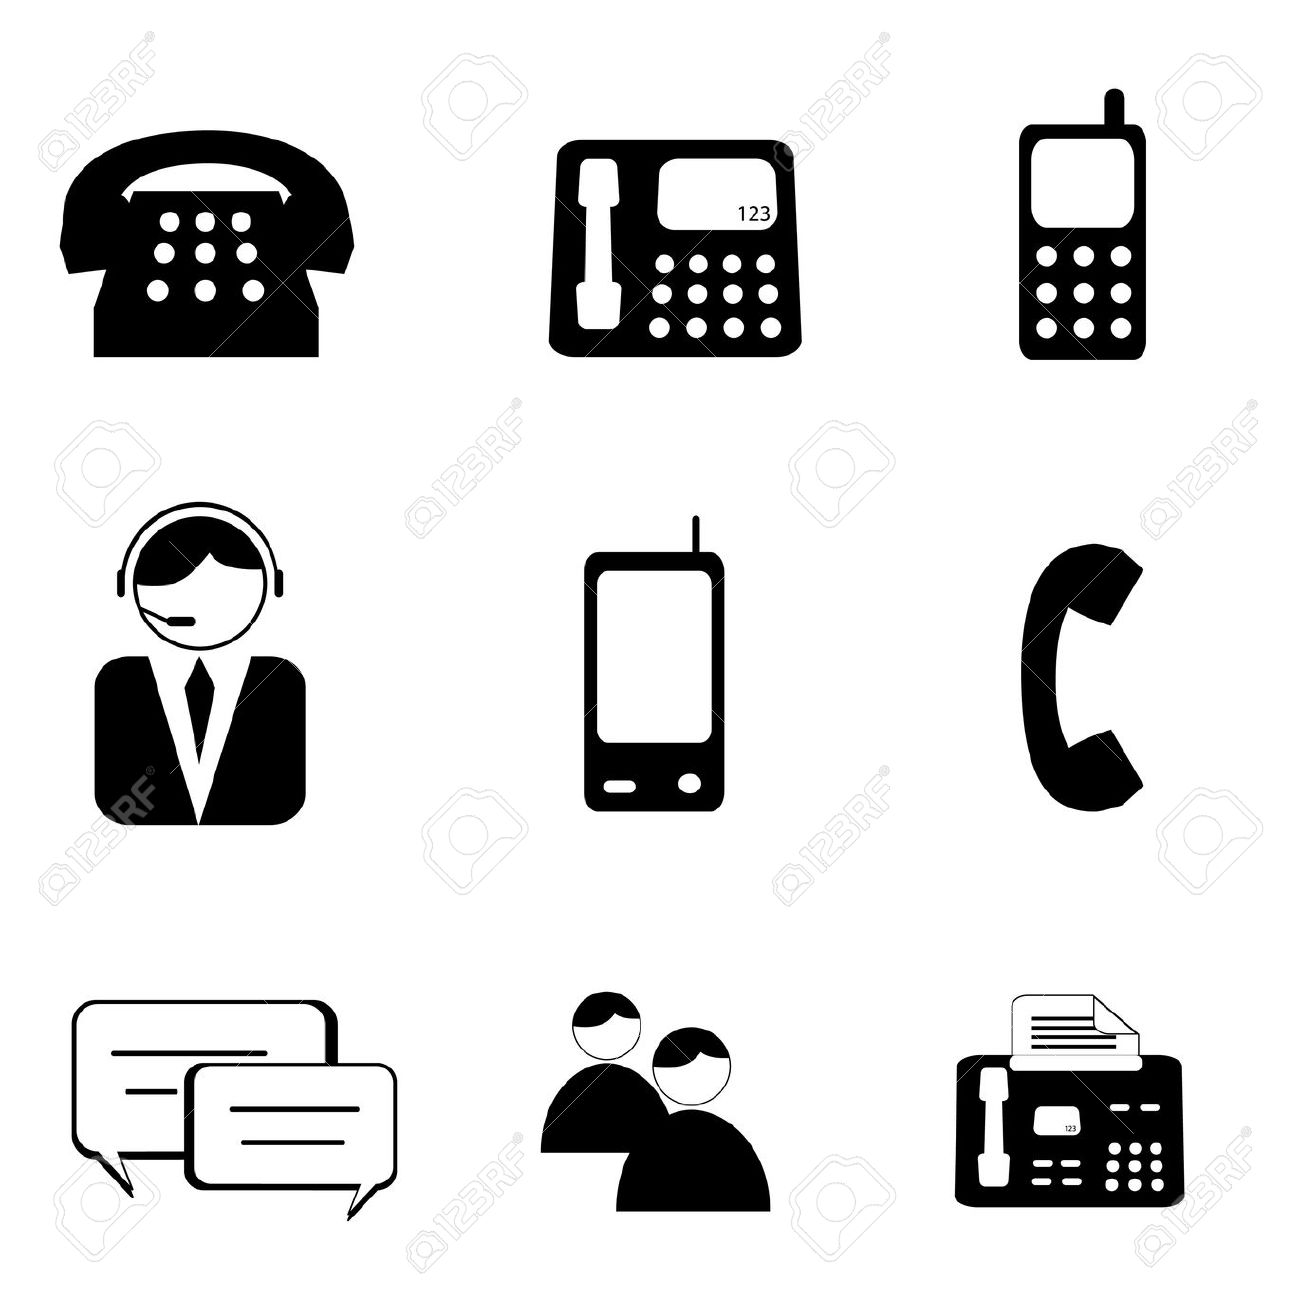 Cell Phone Tax Clipart